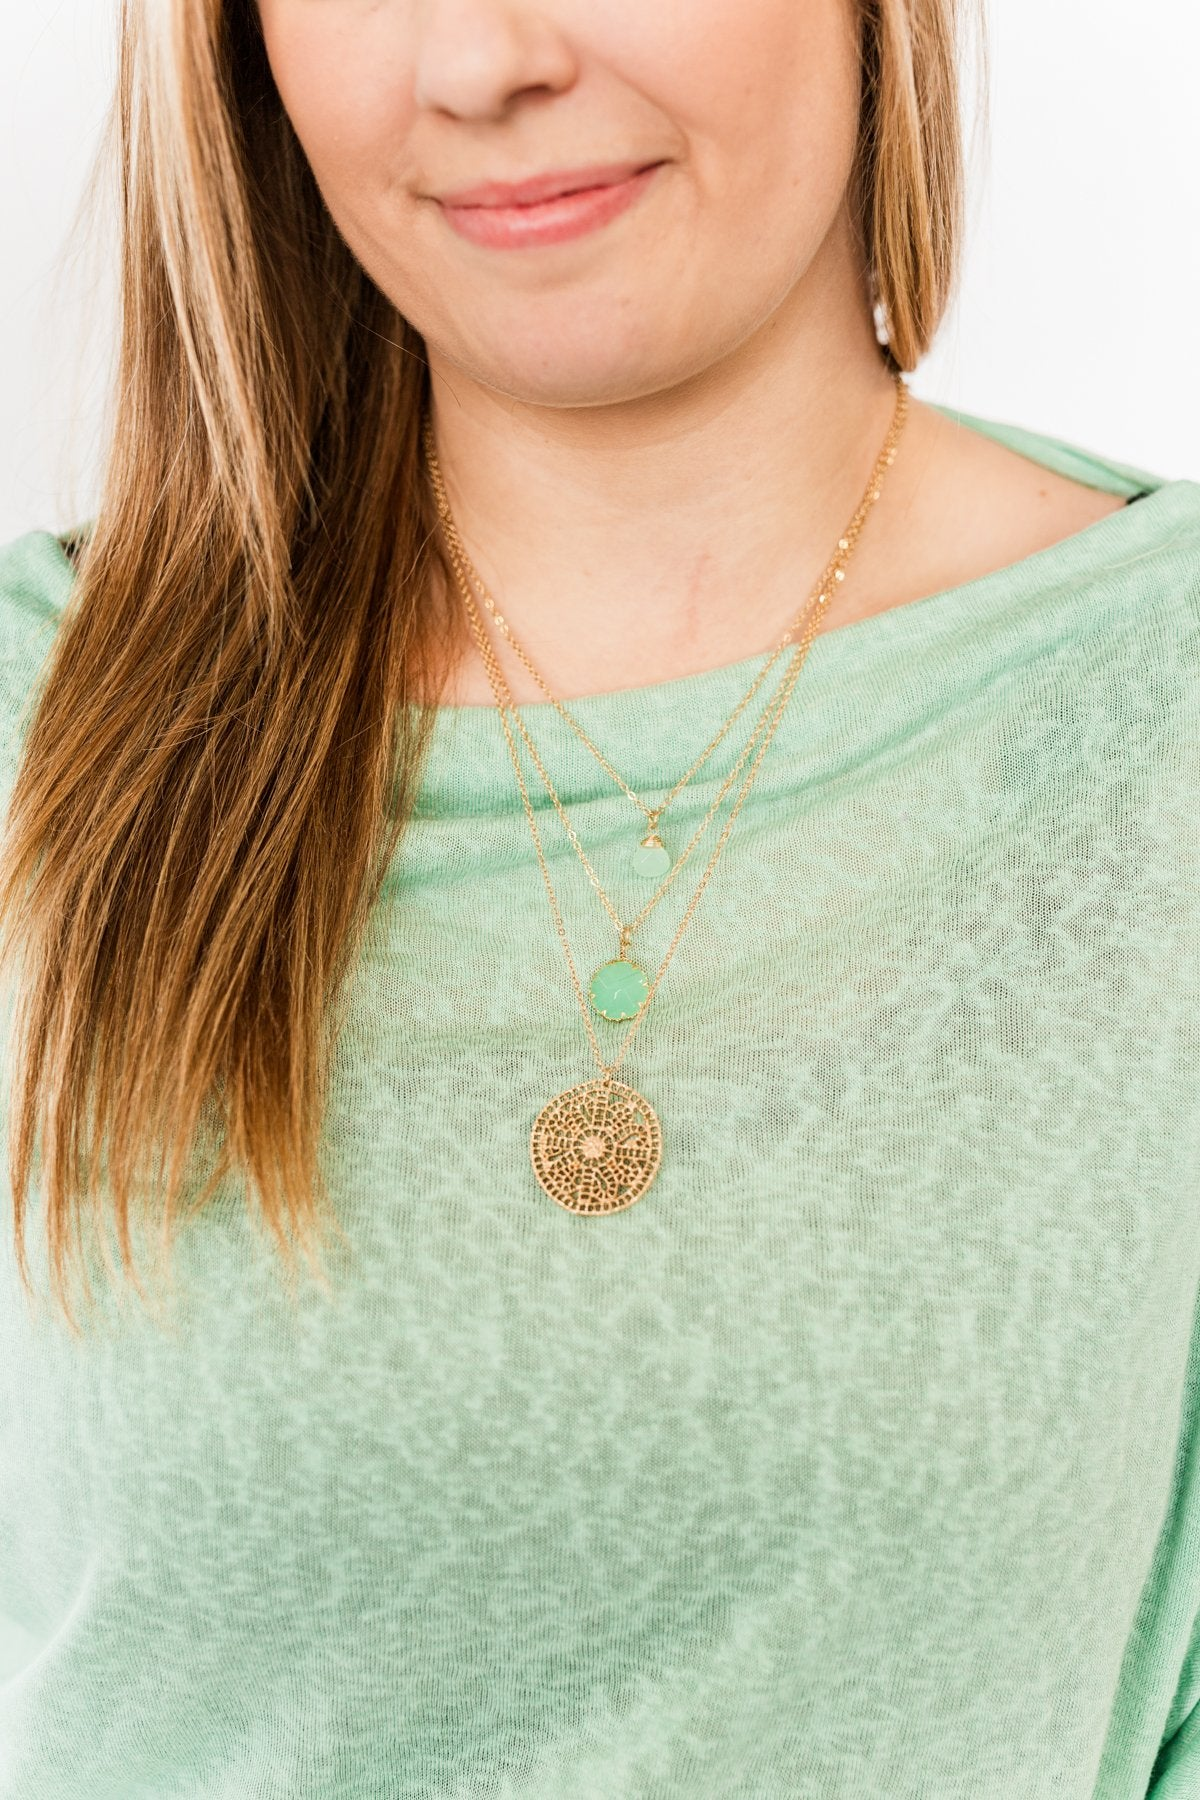 A Touch Of Grace 3-Tier Necklace- Gold & Seafoam Green